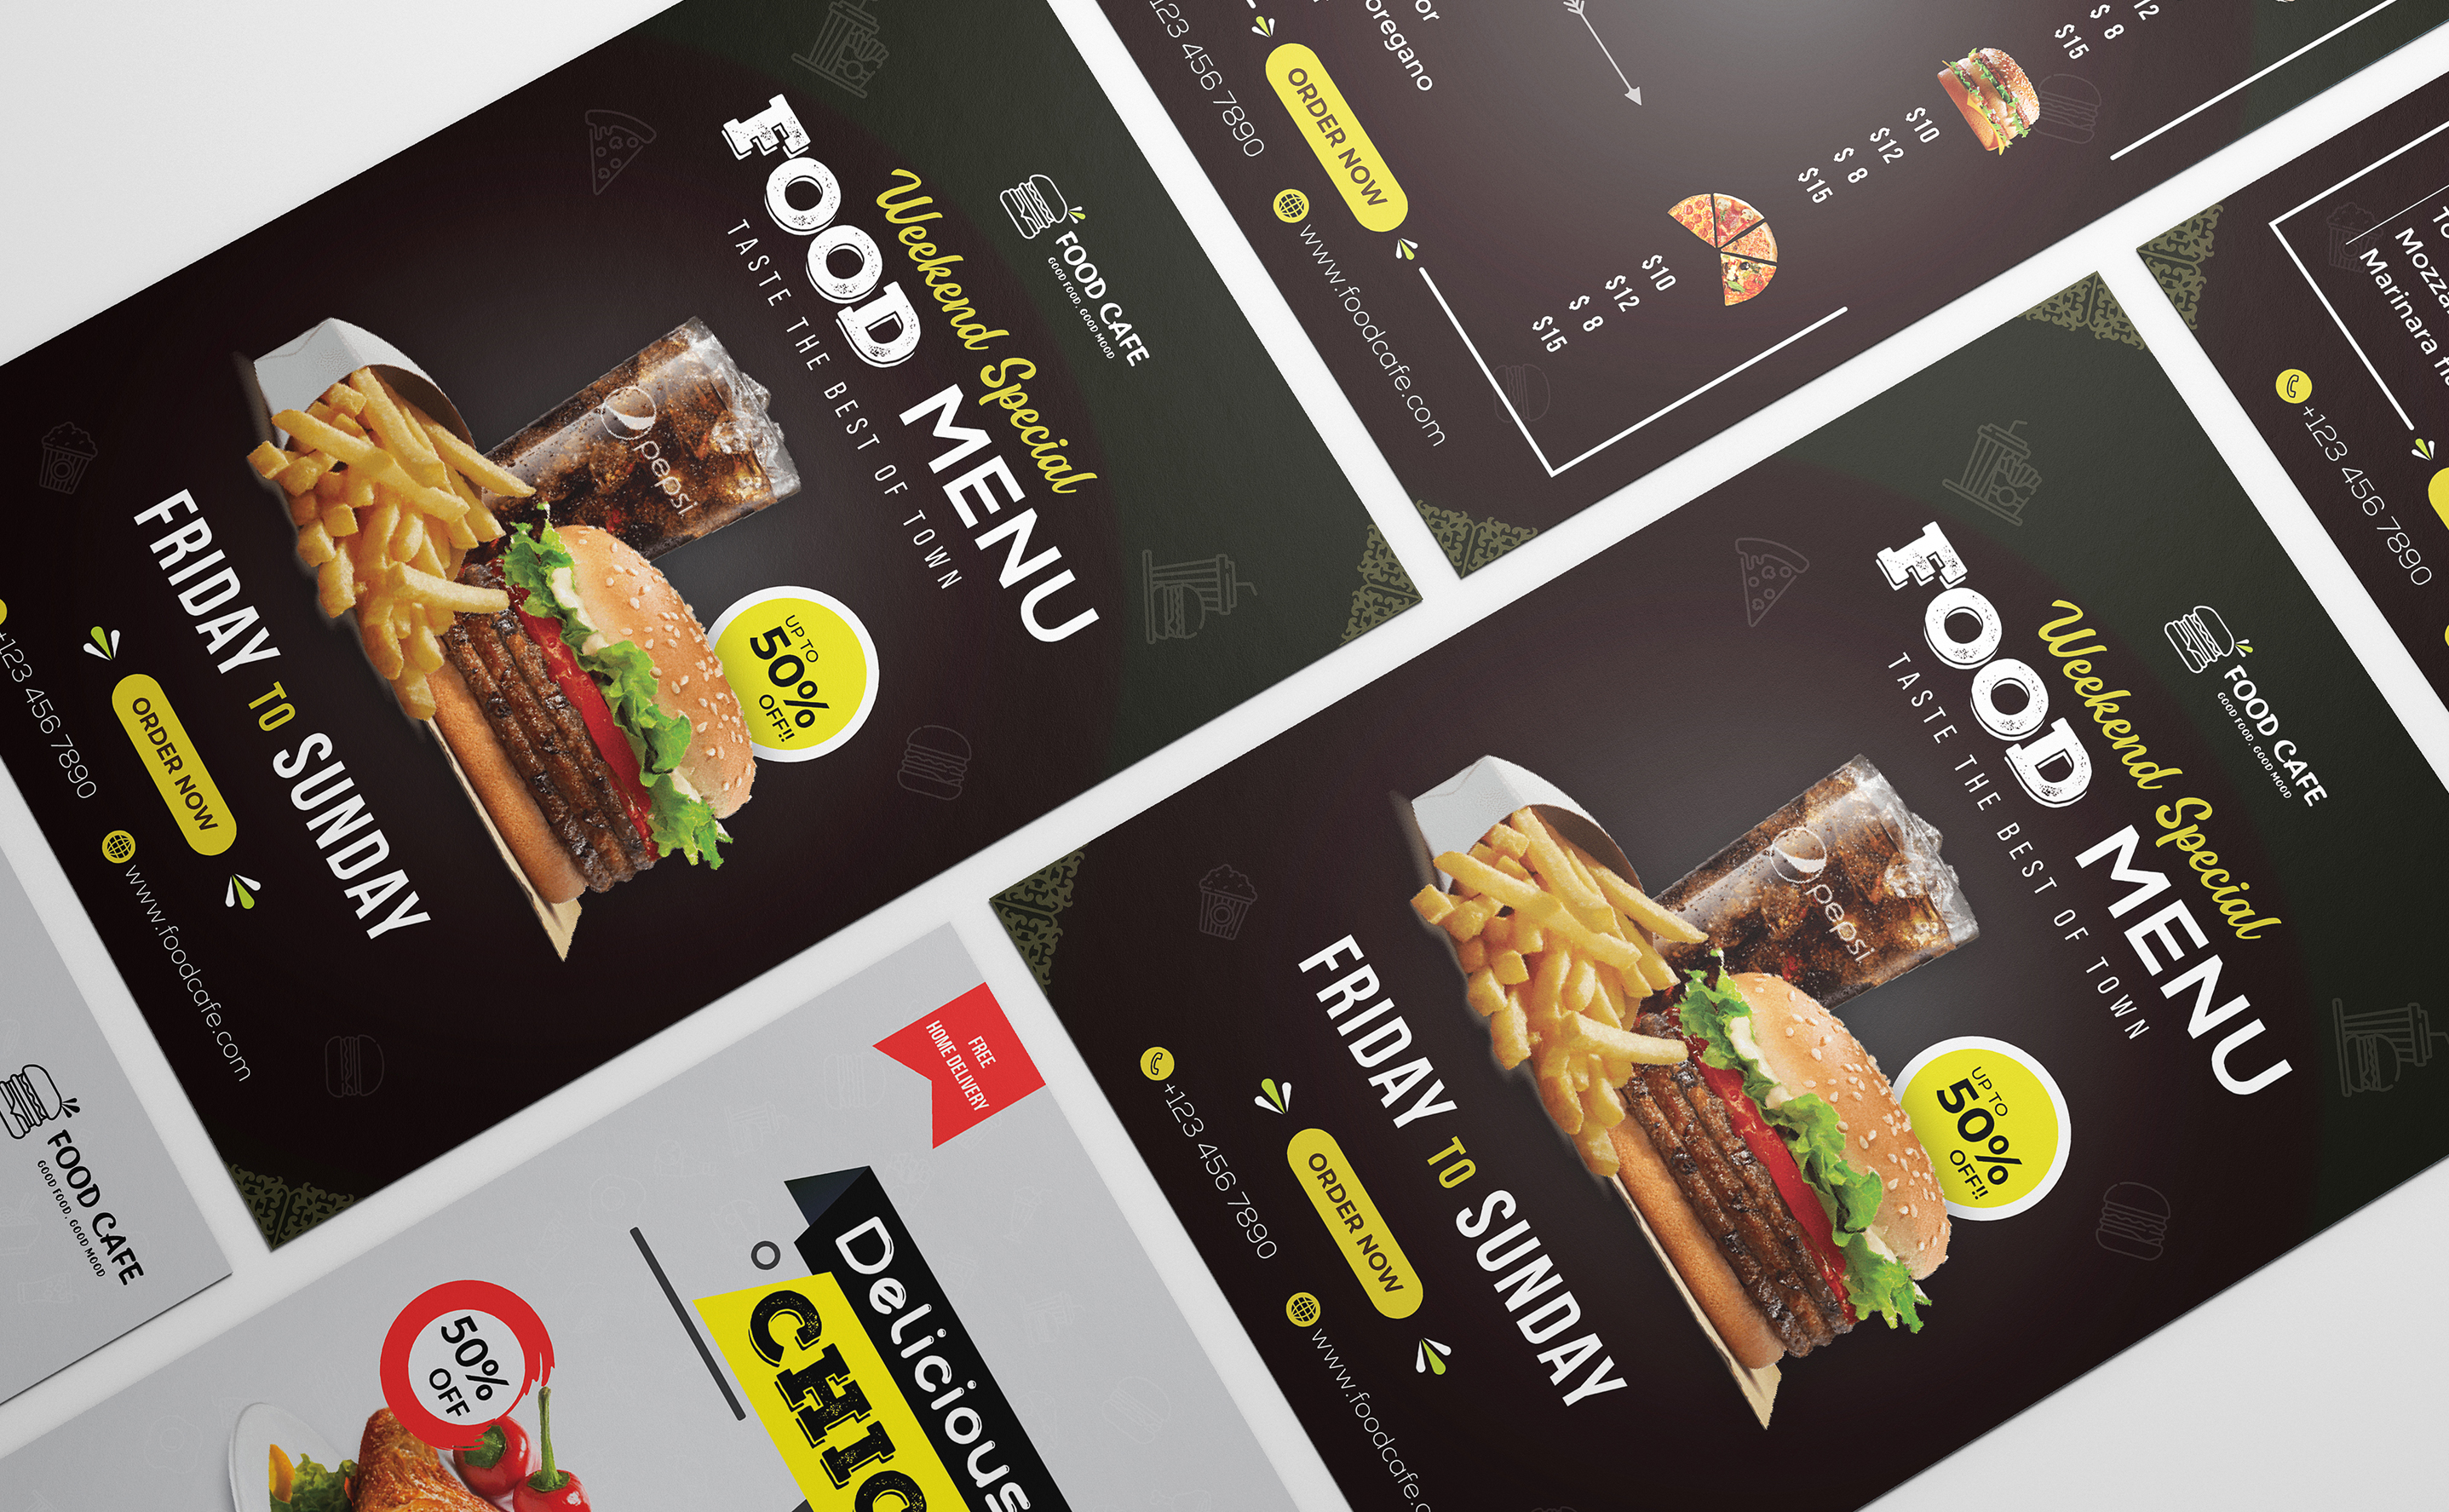 I will design 2 restaurant menu design within 24 hours